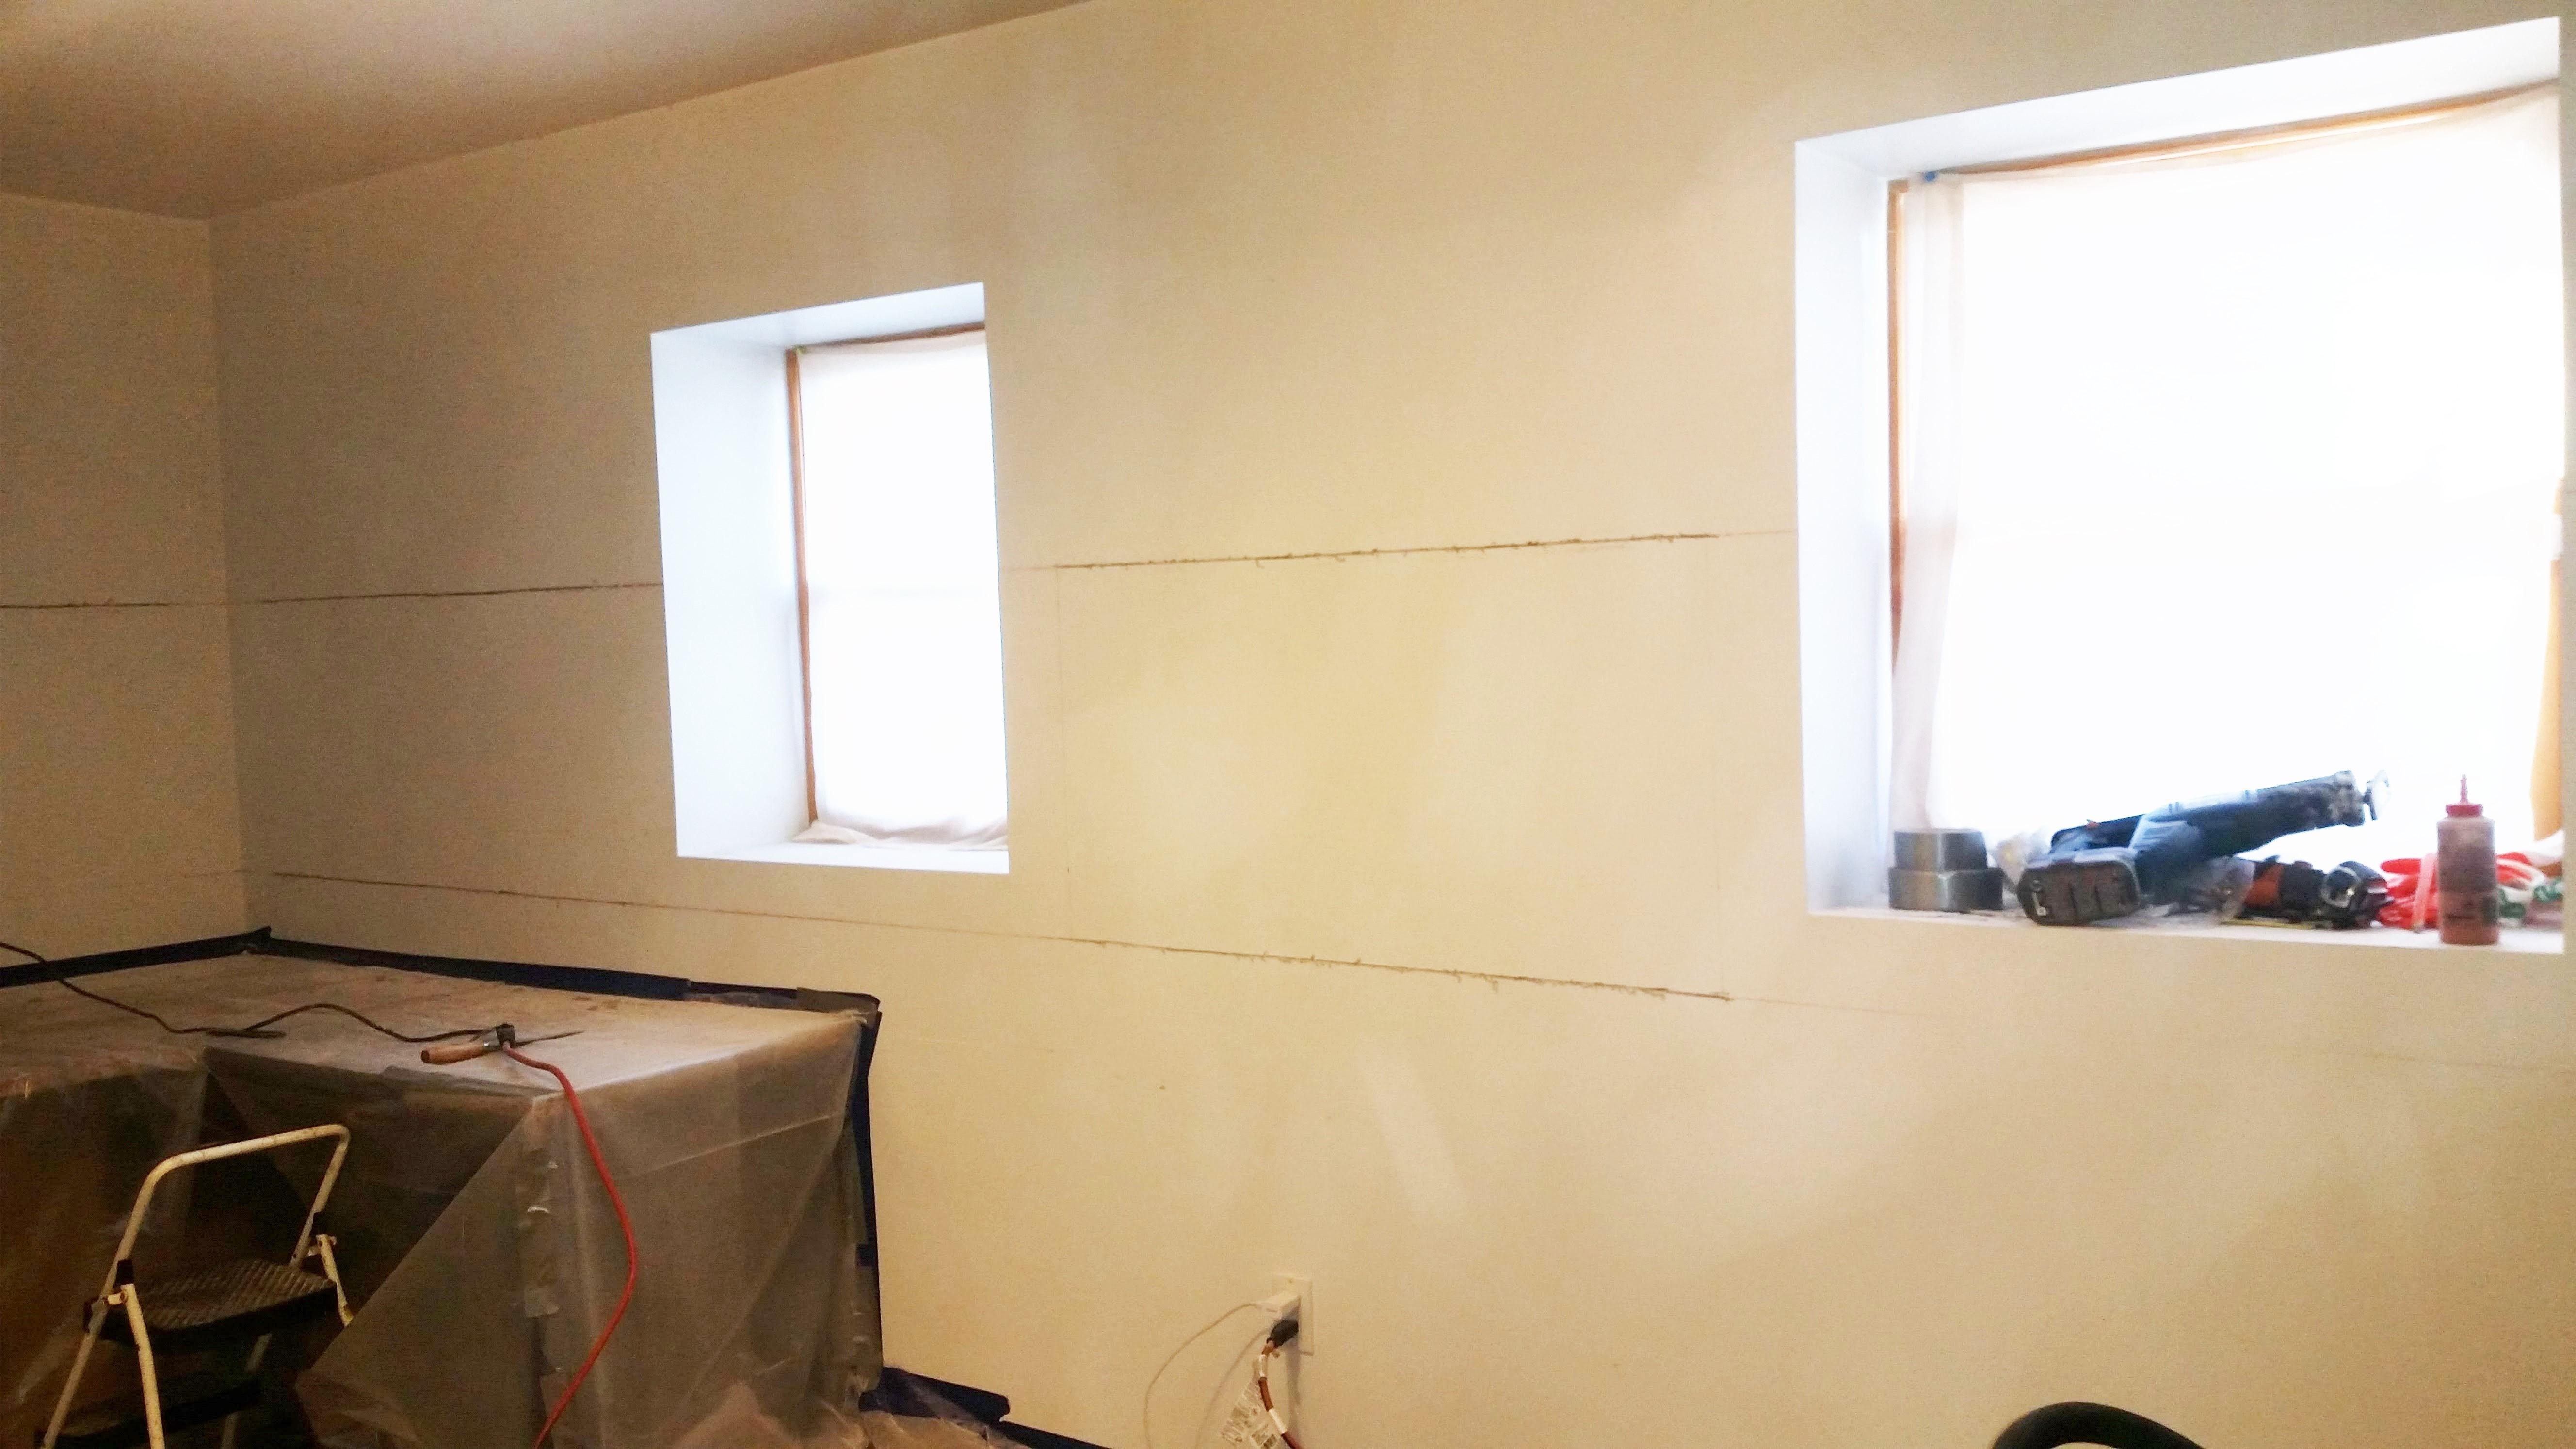 Retrofit Basement Exterior Walls Spray Foam Insulation Staten Island Ny 10301